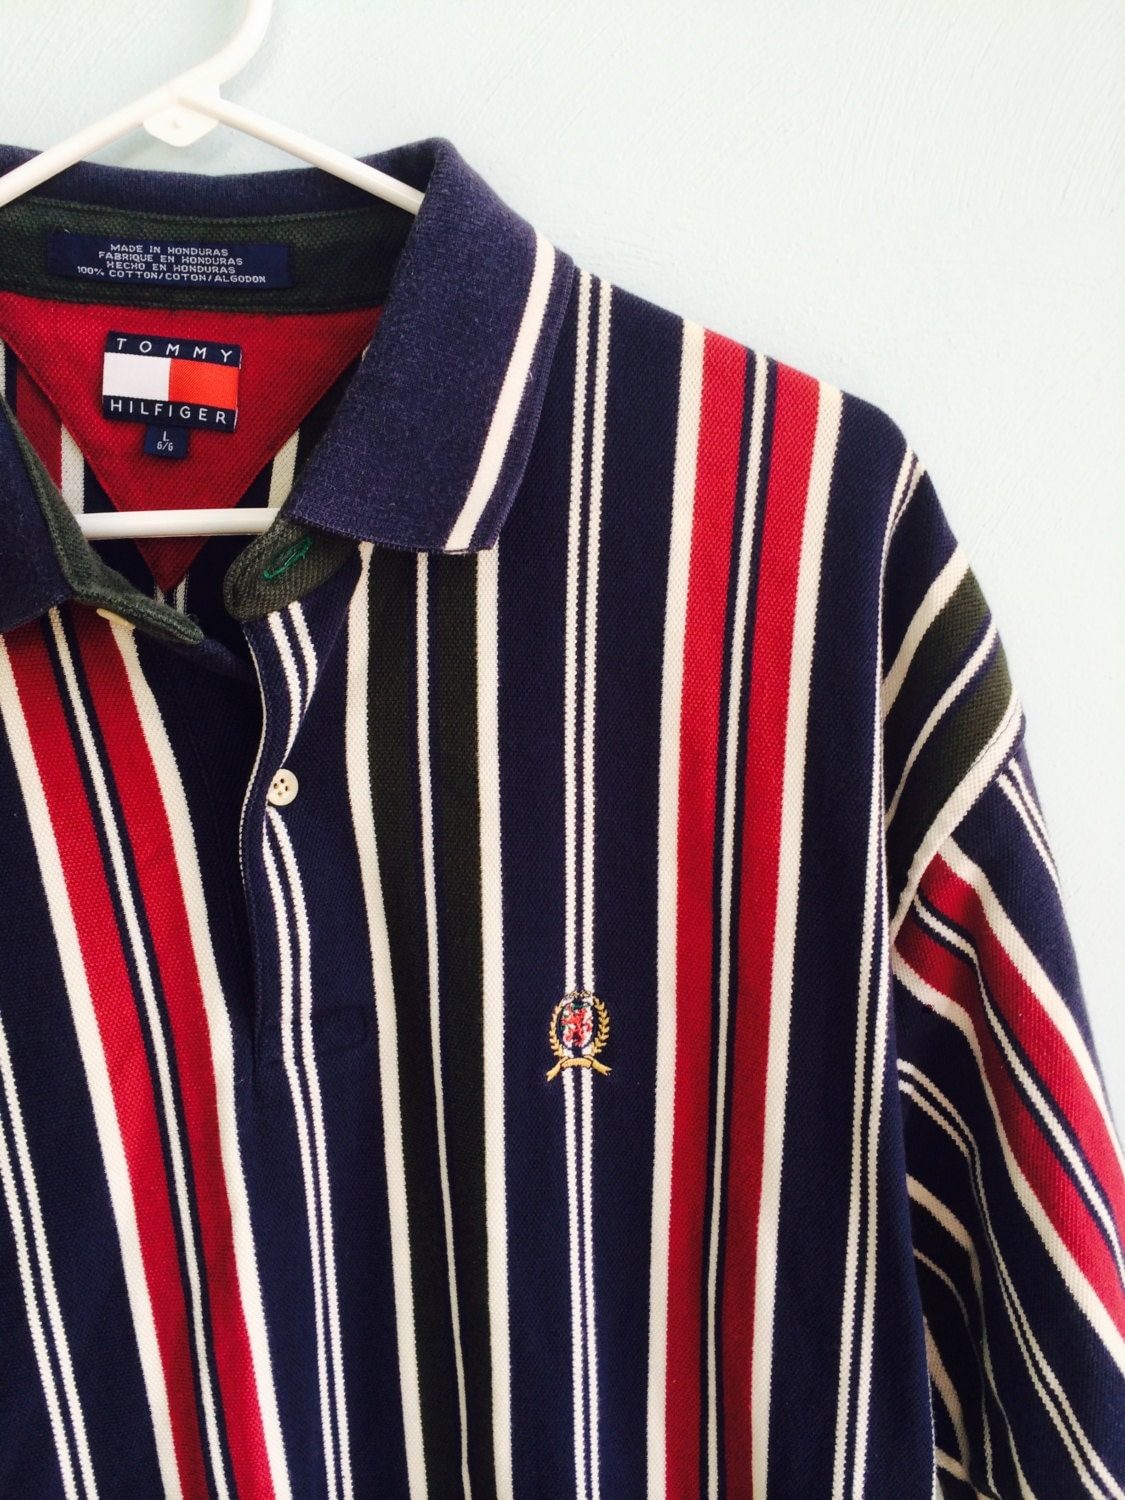 vintage 90s striped tommy hilfiger polo shirt large. Black Bedroom Furniture Sets. Home Design Ideas